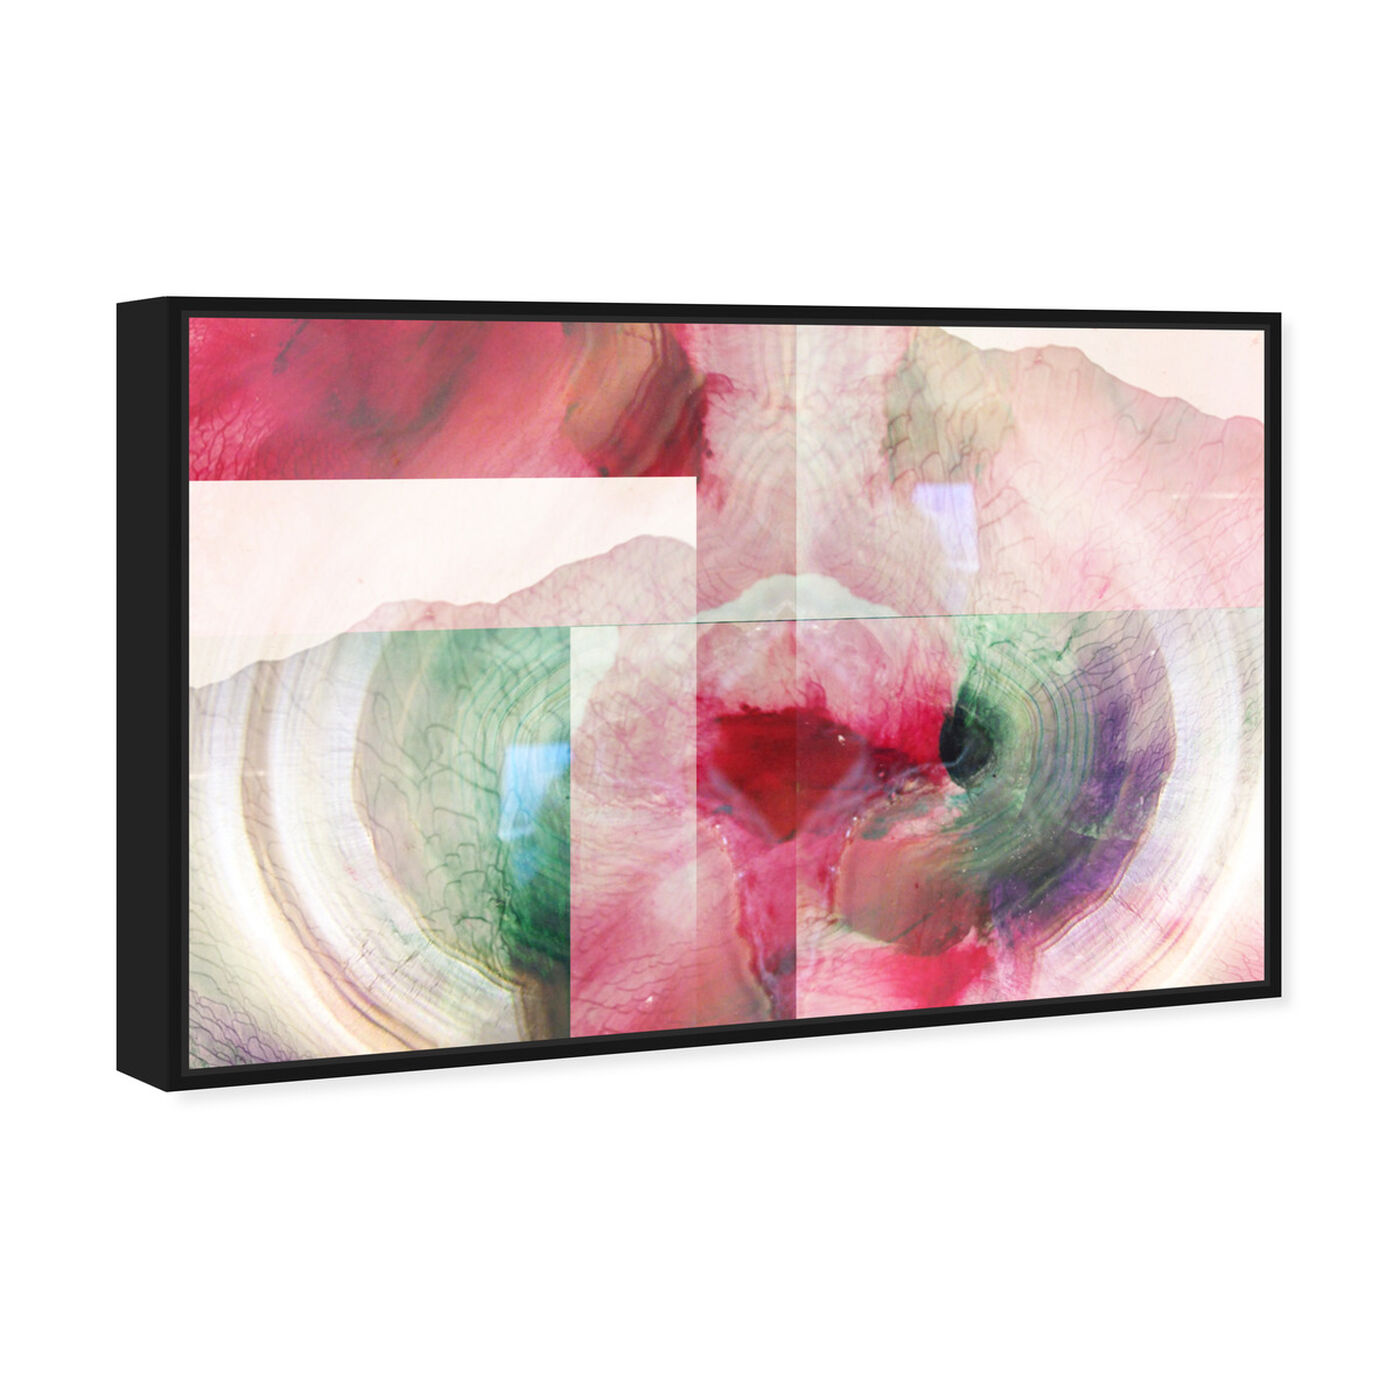 Angled view of Pascha featuring abstract and paint art.